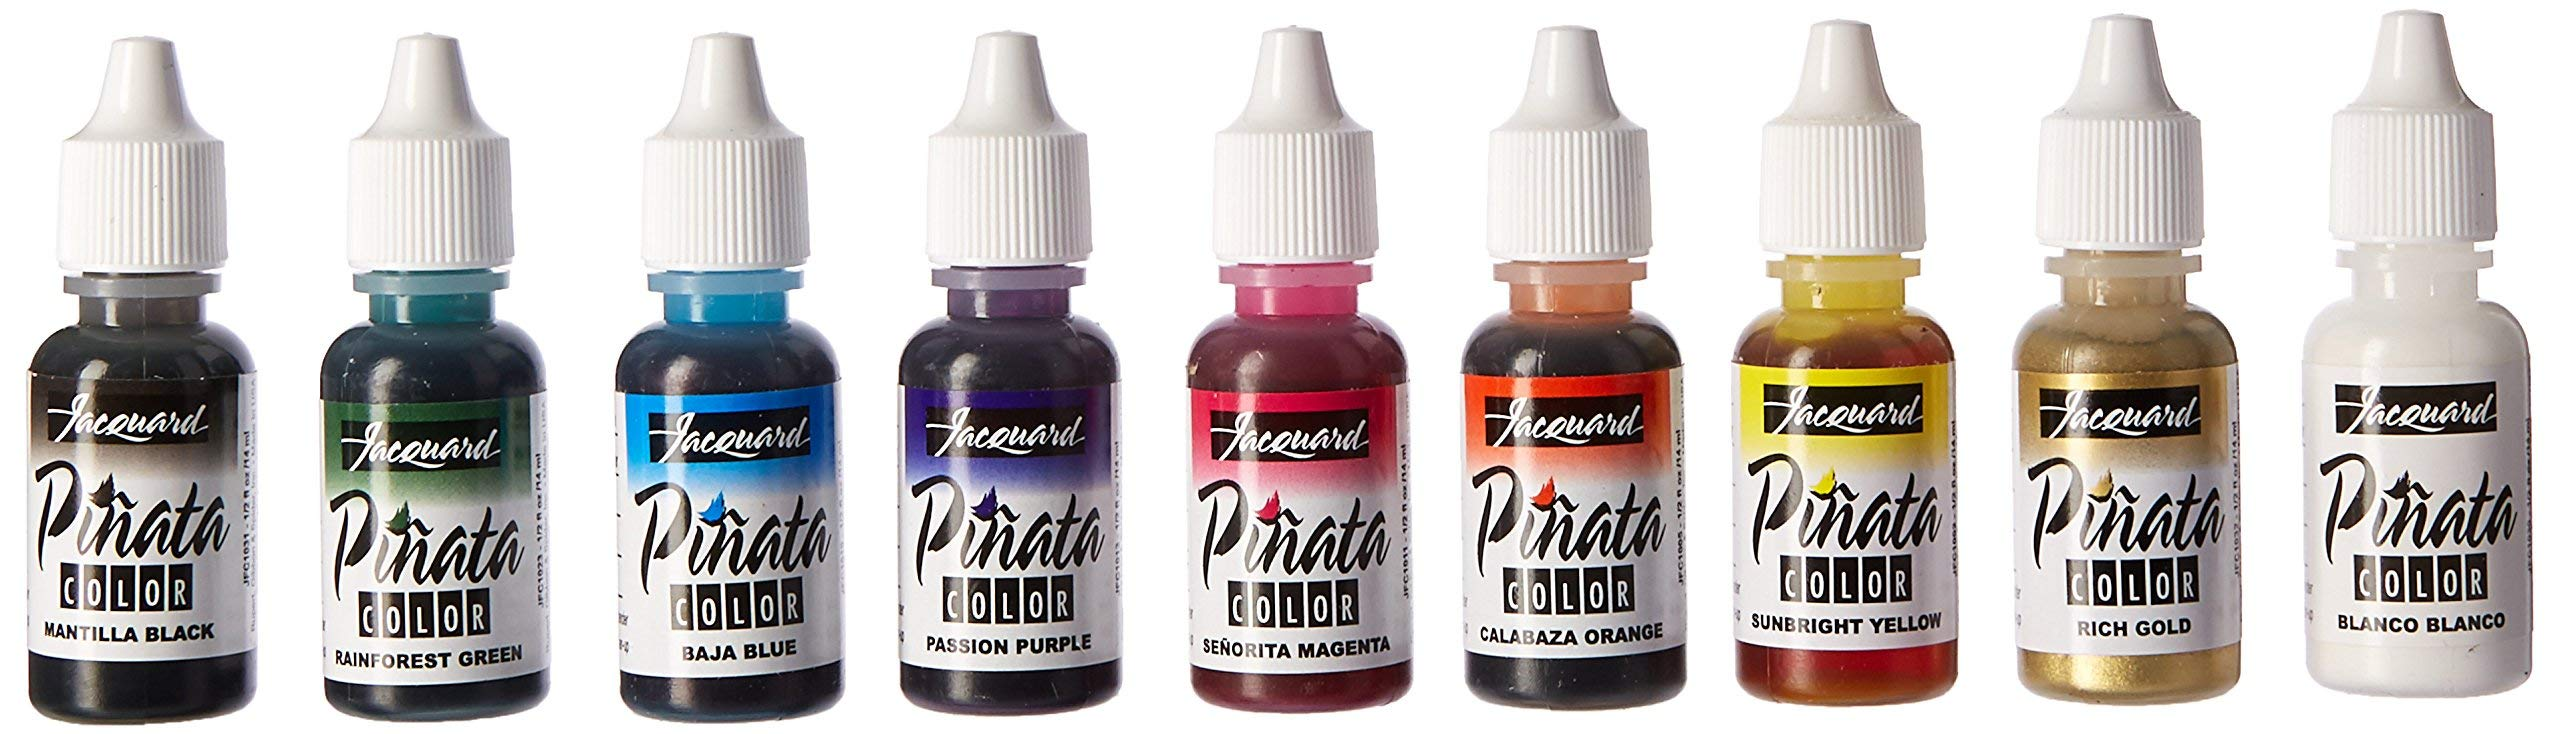 Jacquard Products Acid-Free Pinata Color Exciter Pack Ink 1/2 Ounce Assorted [New Improved Version]